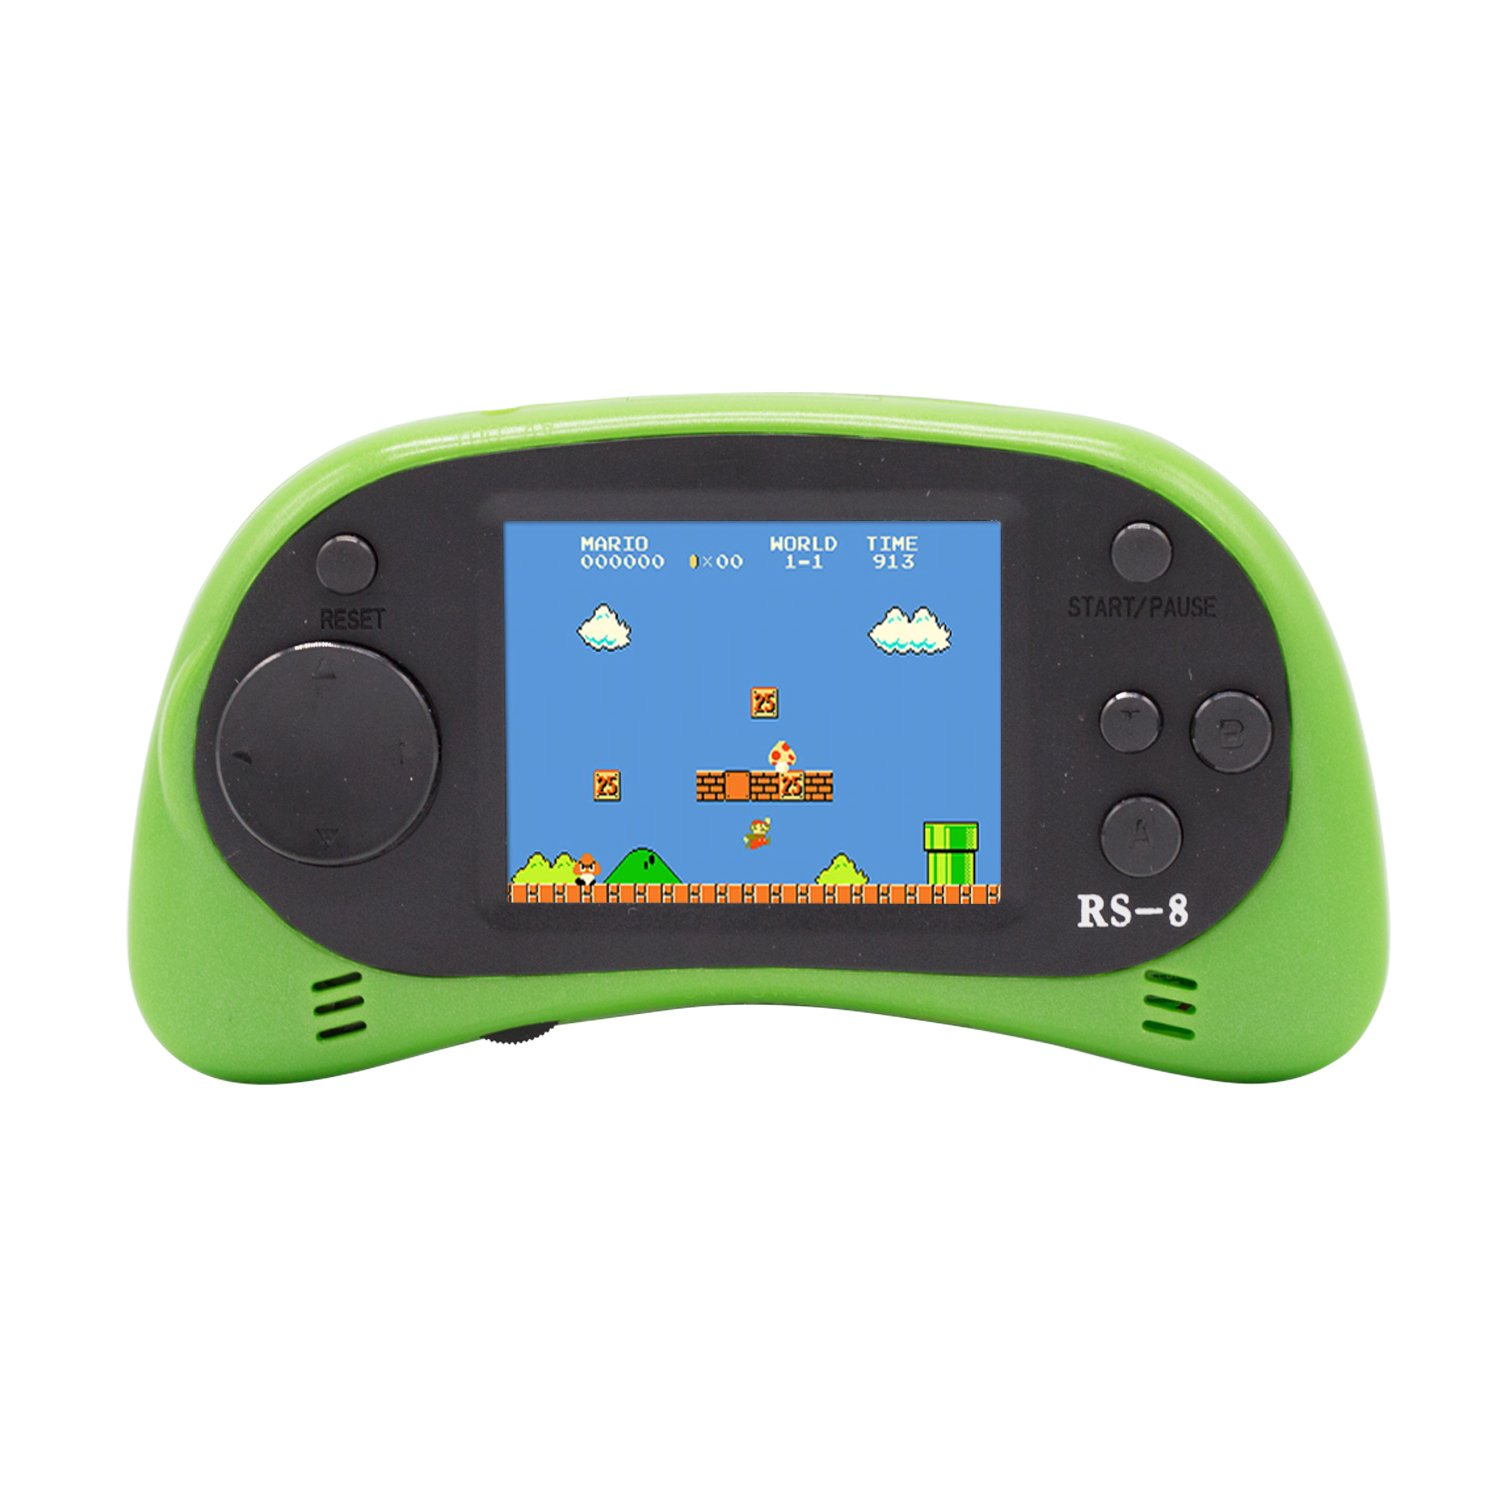 Hades RS-8D Kids Handheld Retro Game Console,Built-in 260 Classic Games TV Video Games,Birthday Gifts for Children (Green)